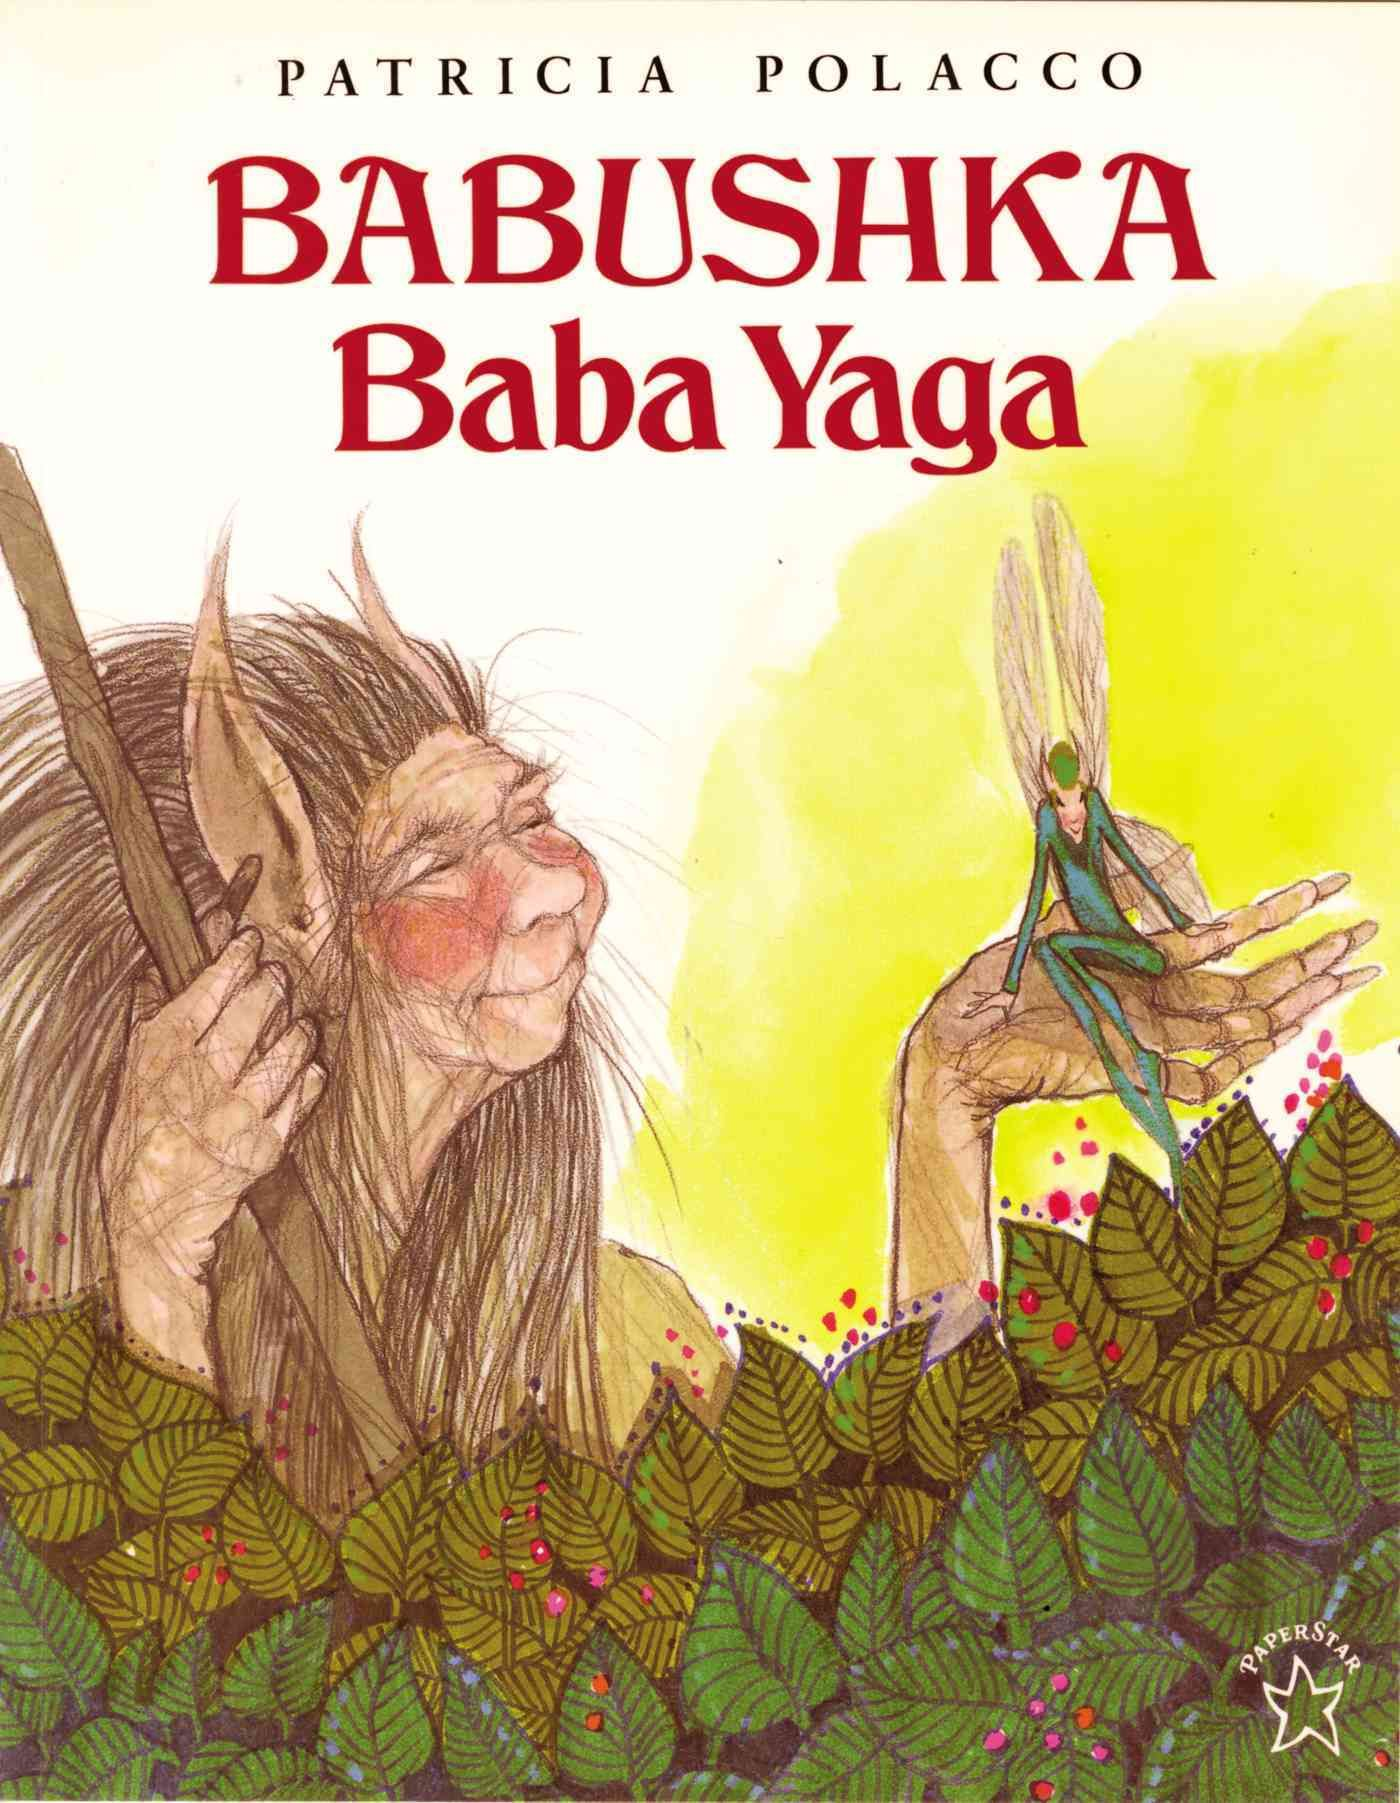 baba yaga is a witch famous throughout russia for eating children